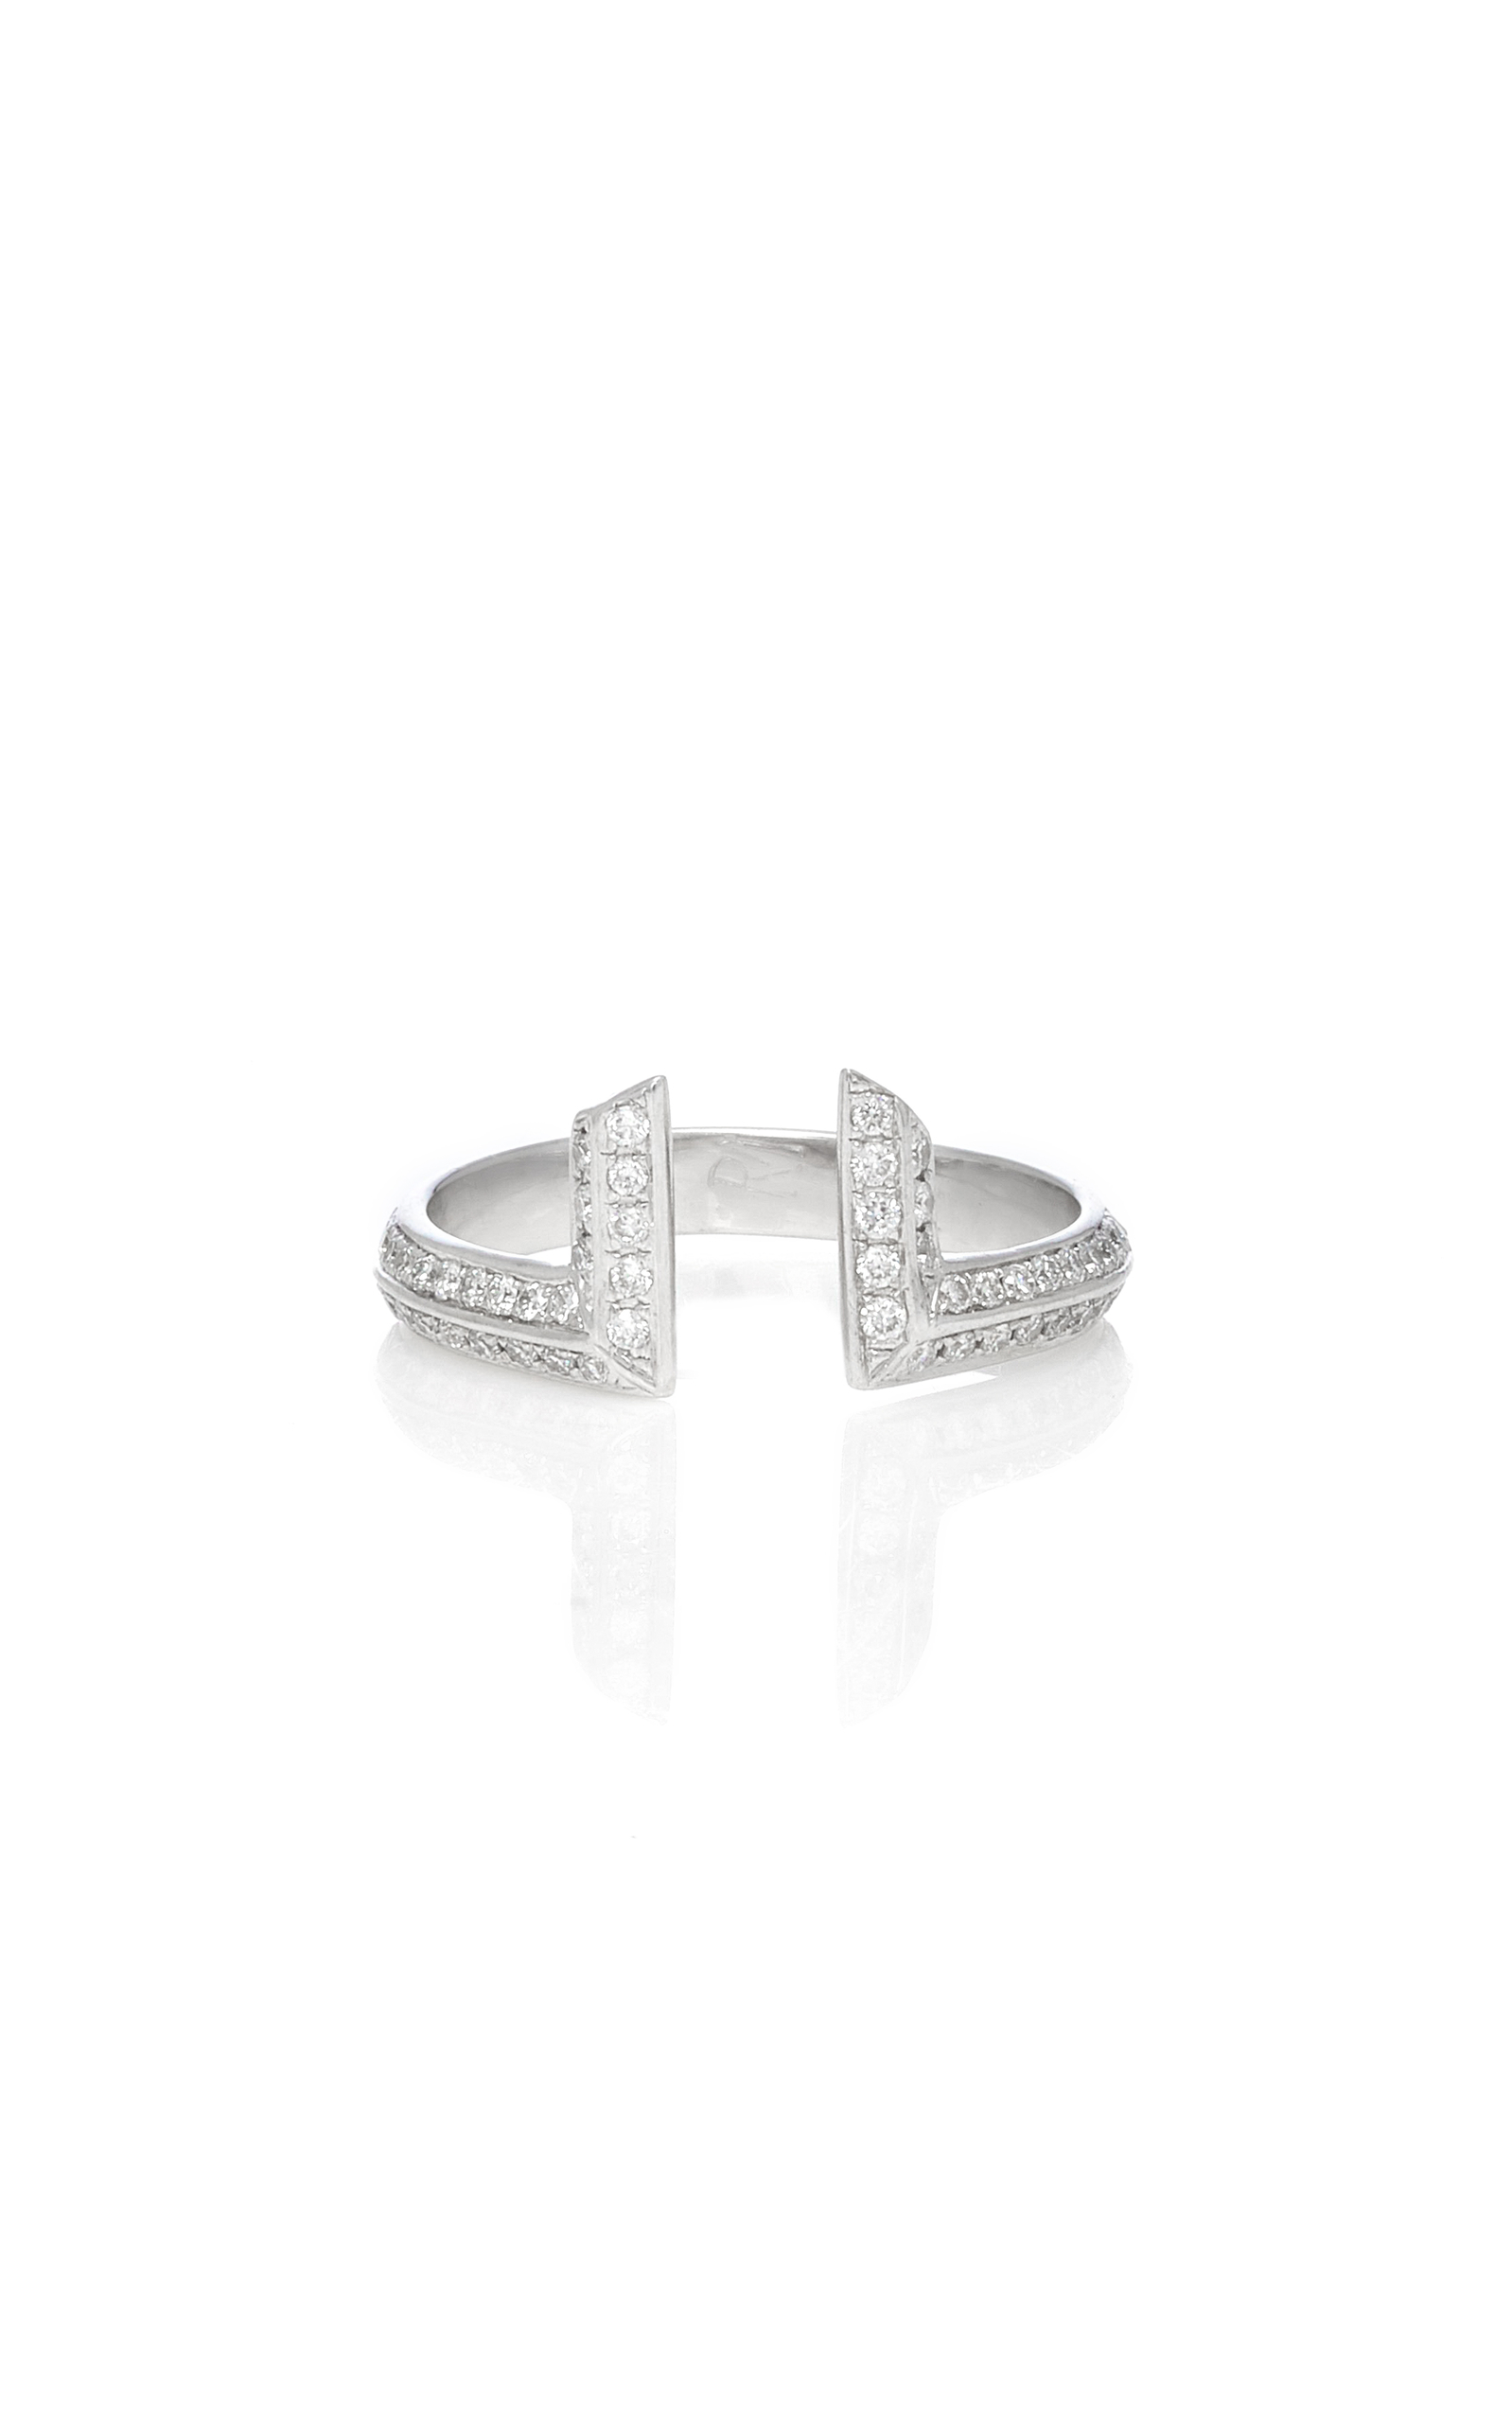 RALPH MASRI White Gold And Diamond Ring in Silver